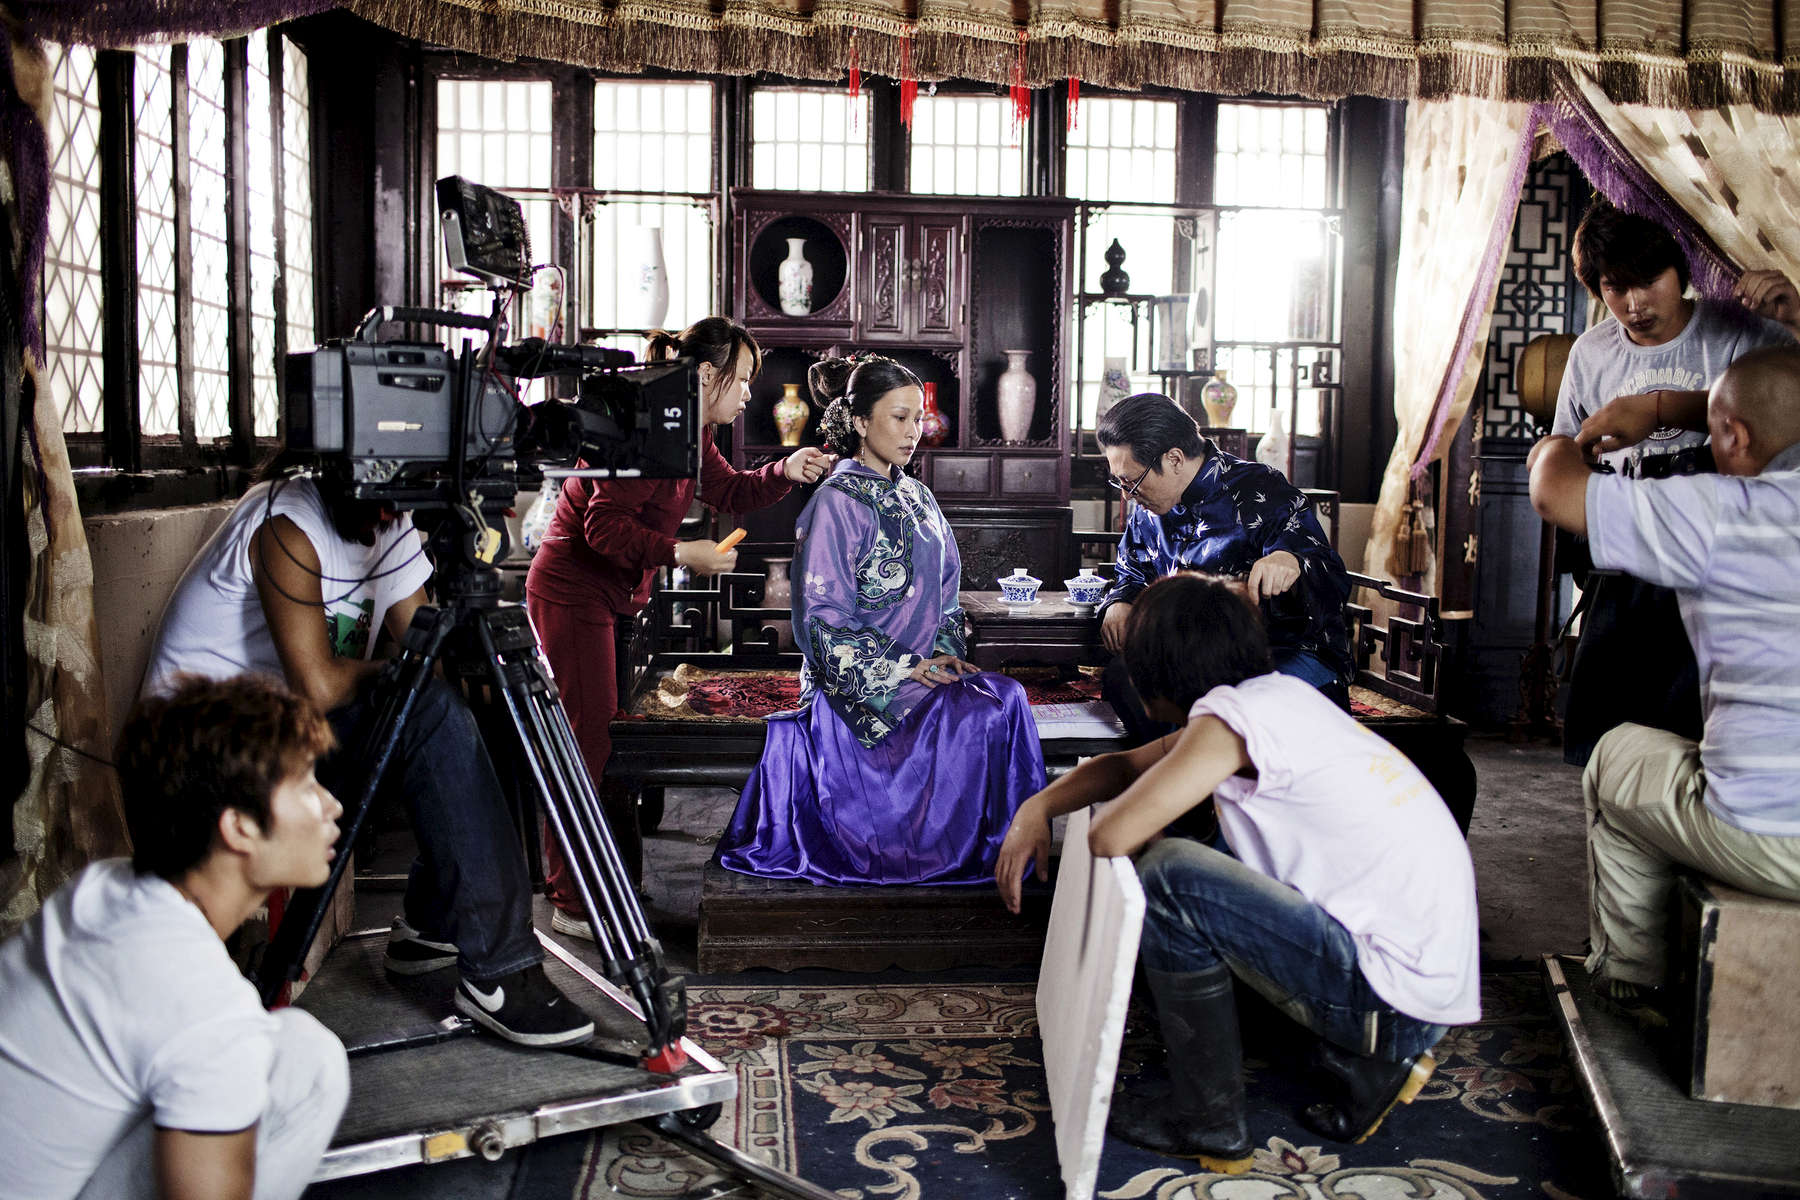 Hengdian World Studios,The film studio is the world\'s largest and features a 1:1 scale reproduction of the Forbidden City in Beijing, During the shooting of a Tv serial showing the old chinese empire